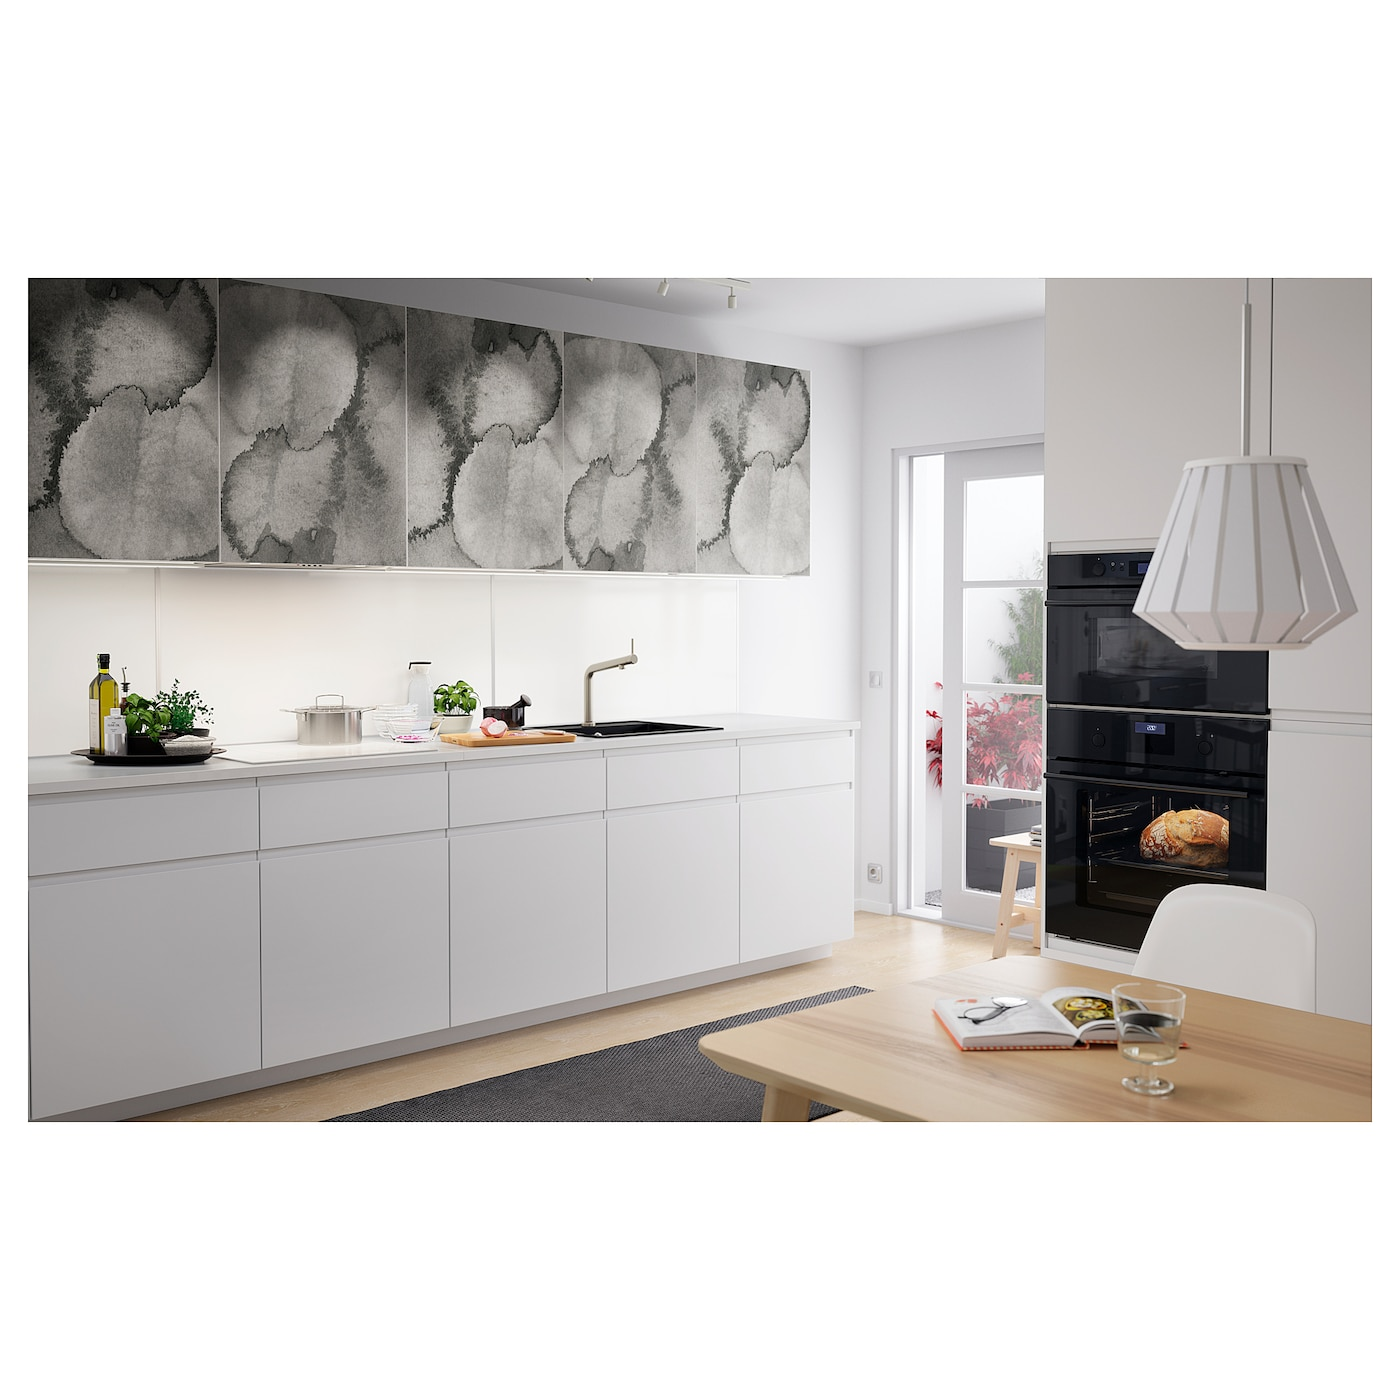 LYSEKIL Wall panel - double sided white/light grey concrete effect 9.9x9  cm